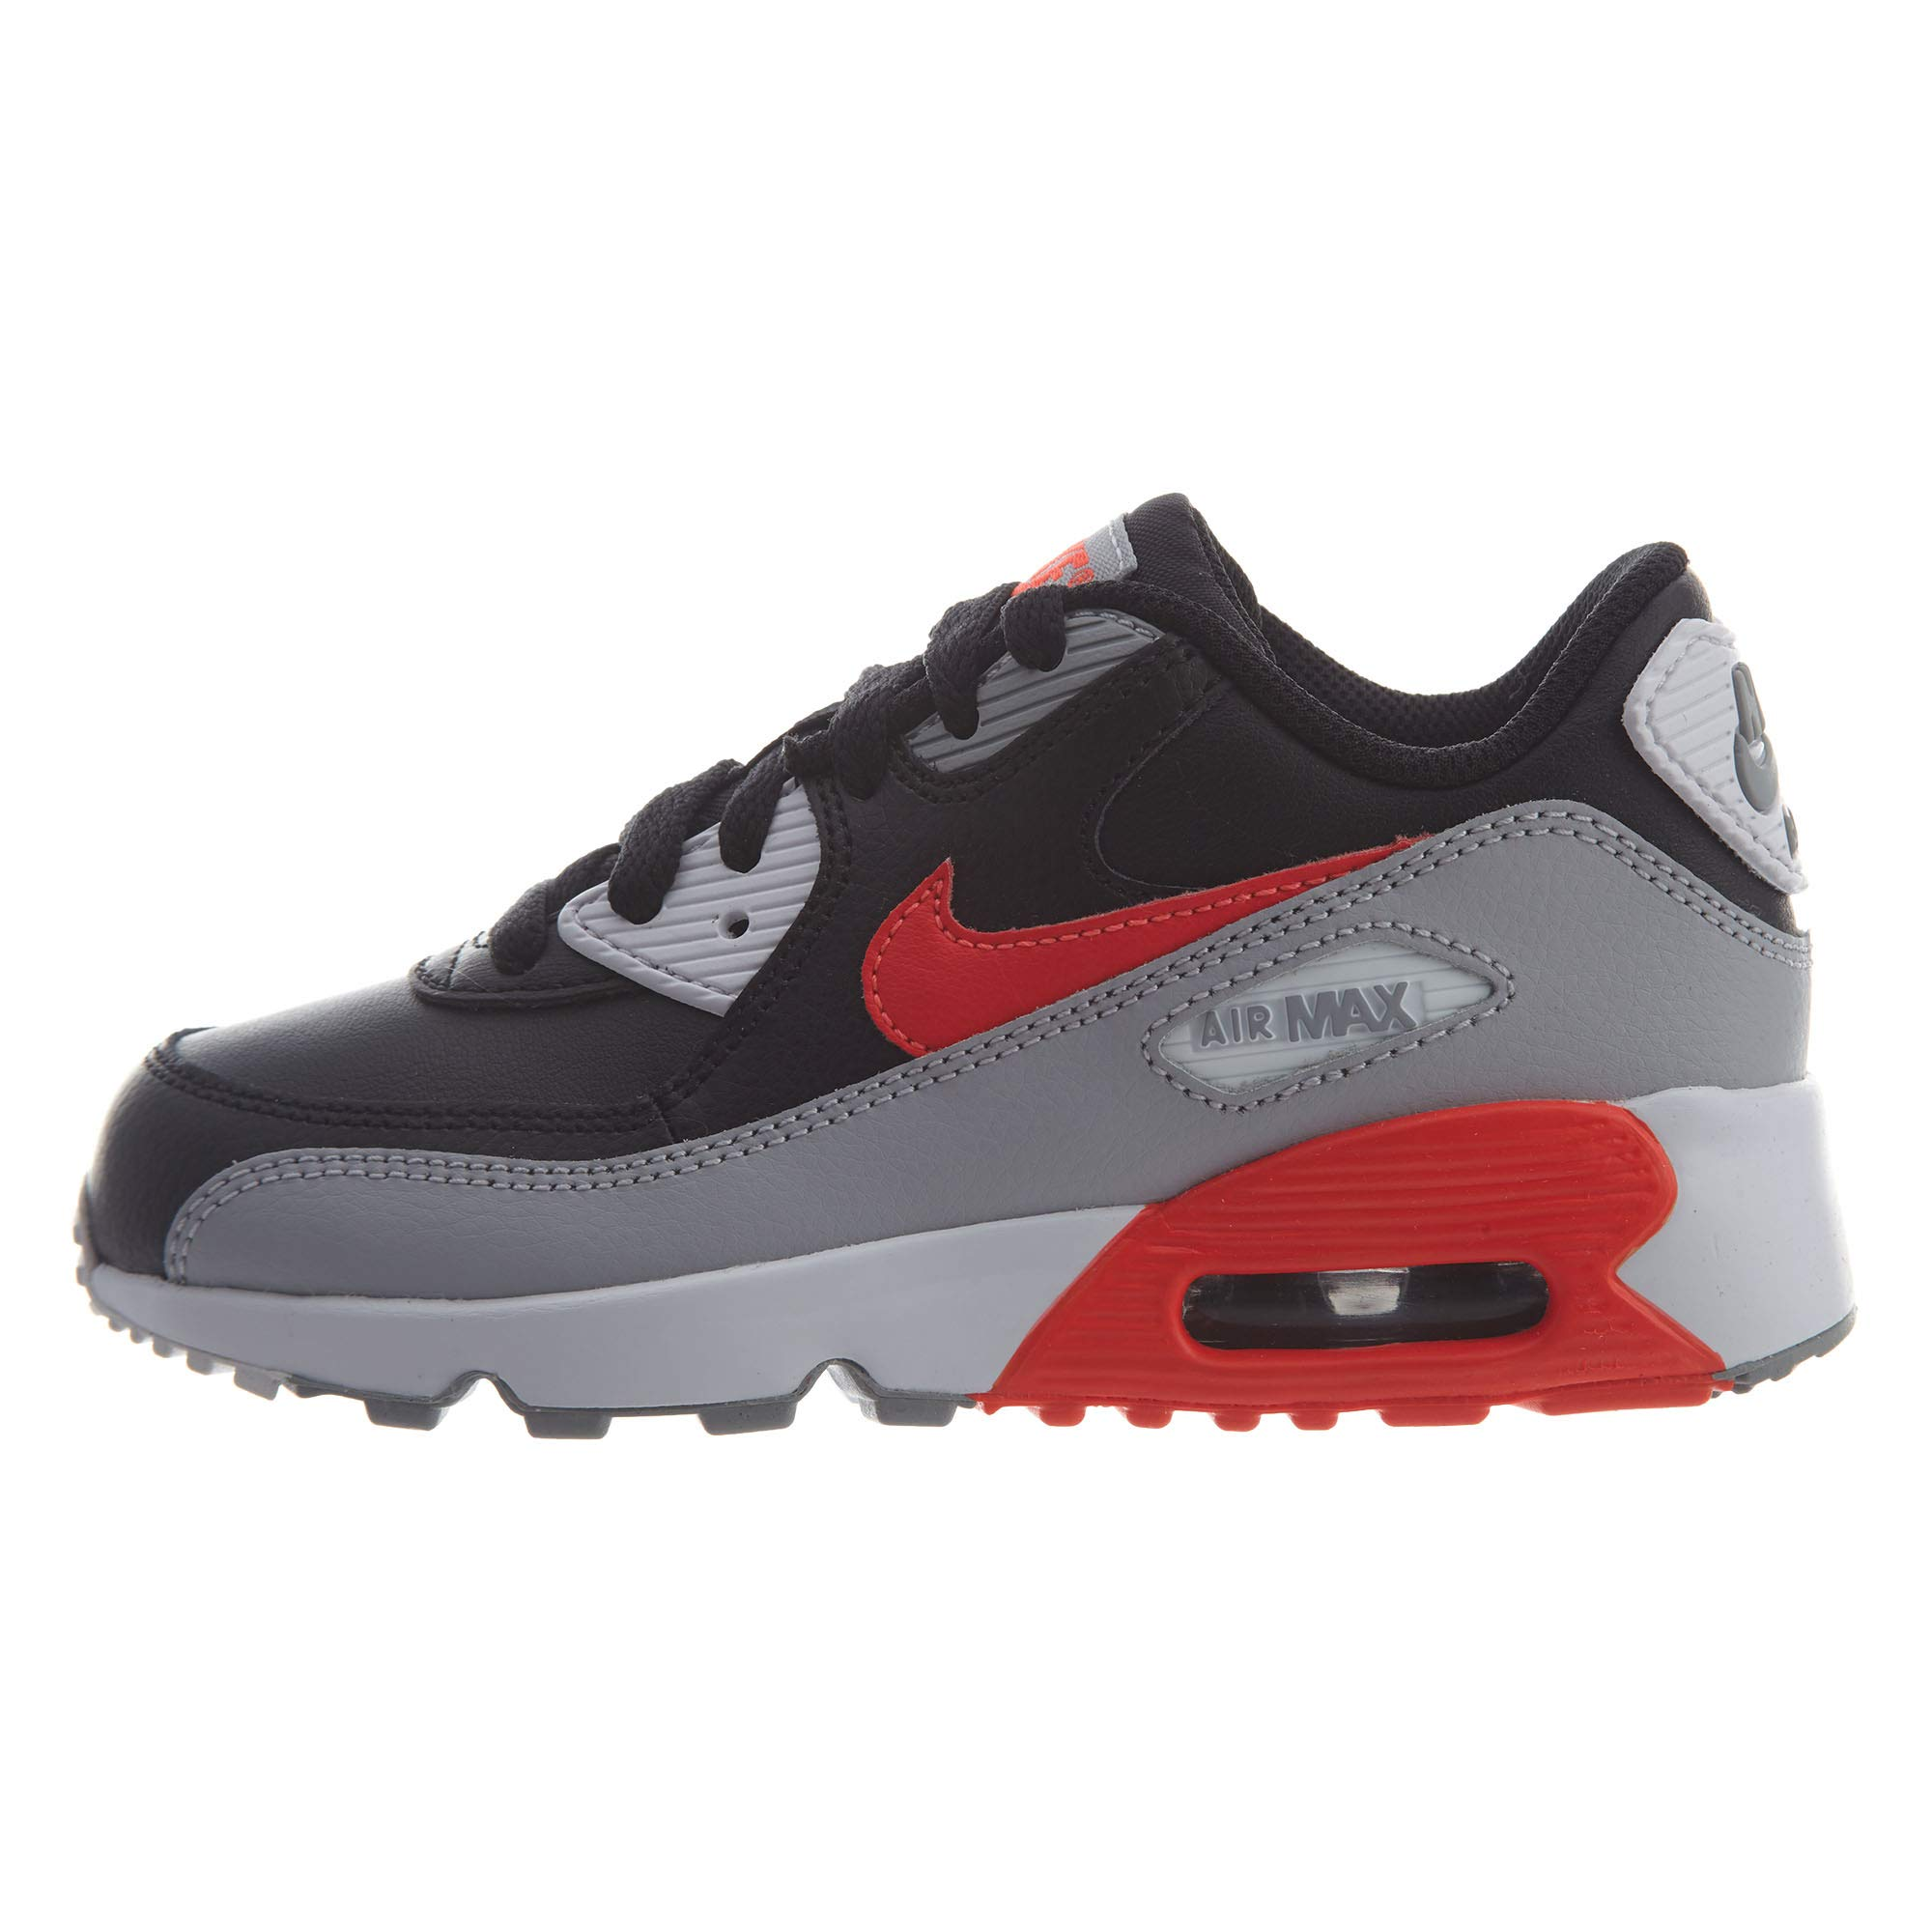 super popular 7a638 af19d Nike Air Max 90 LTR Little Kids Style: 833414-024 Size: 11.5